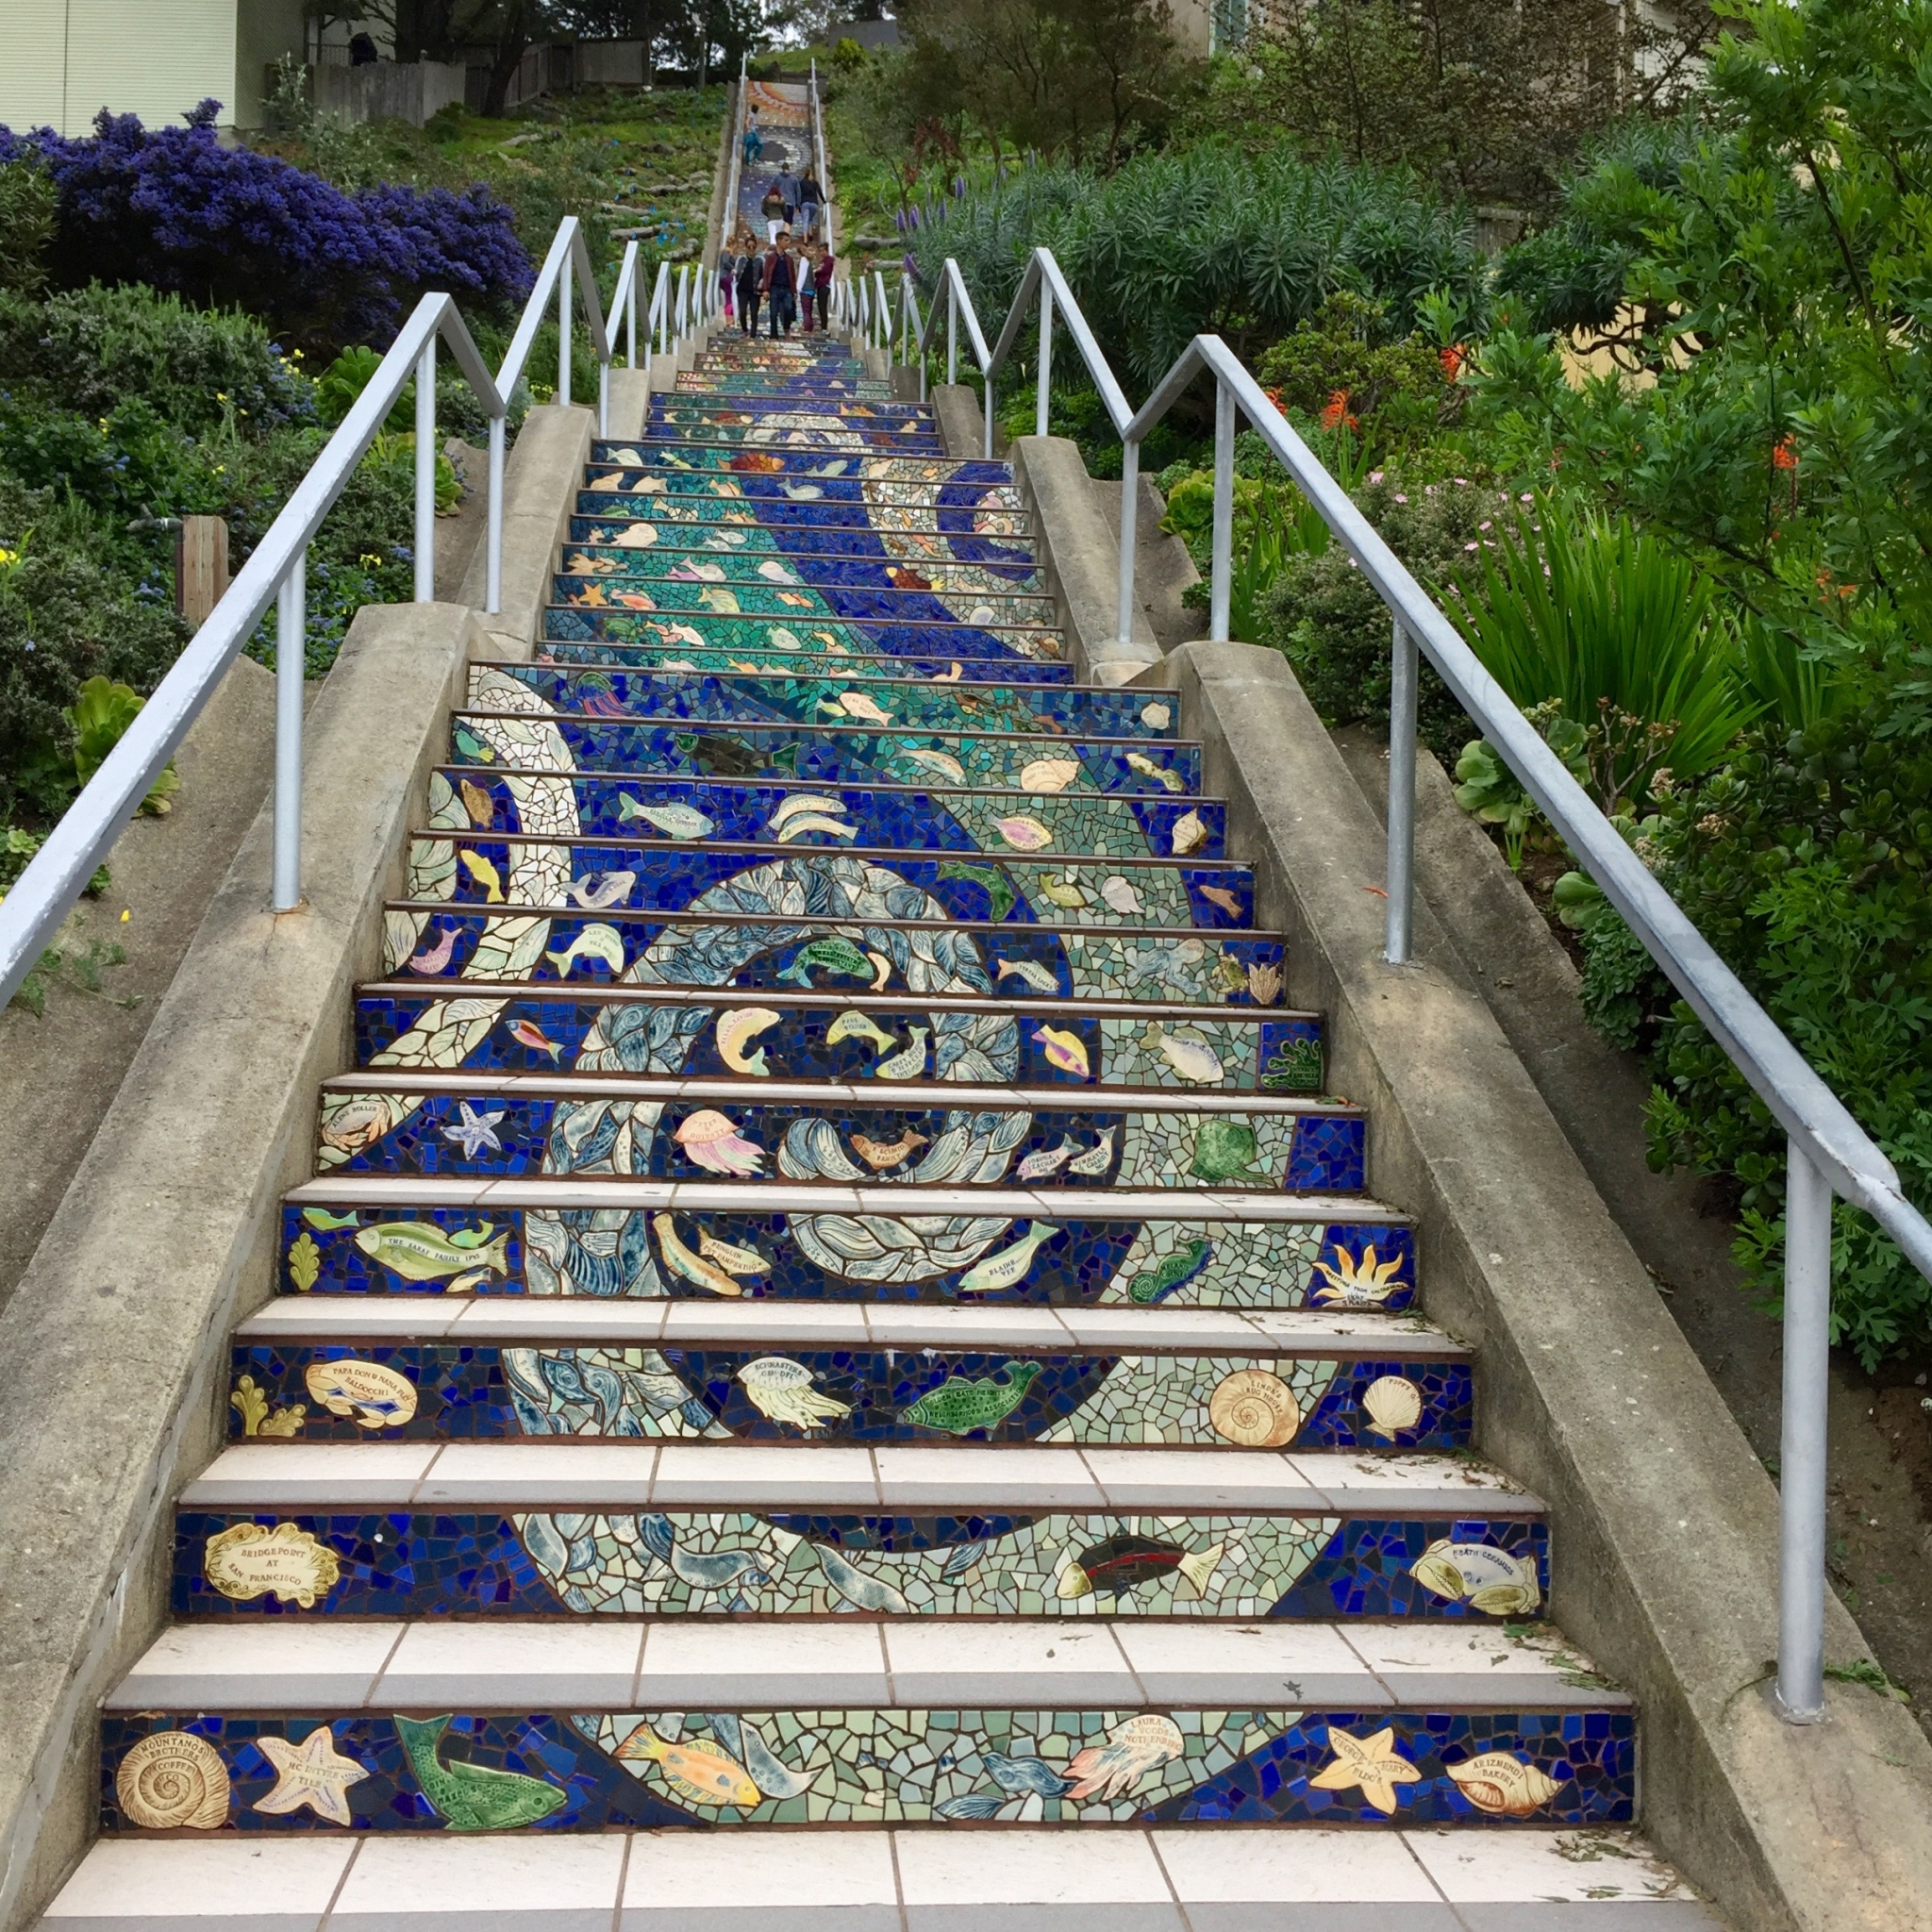 Bay Area things to do for fun off the beaten path